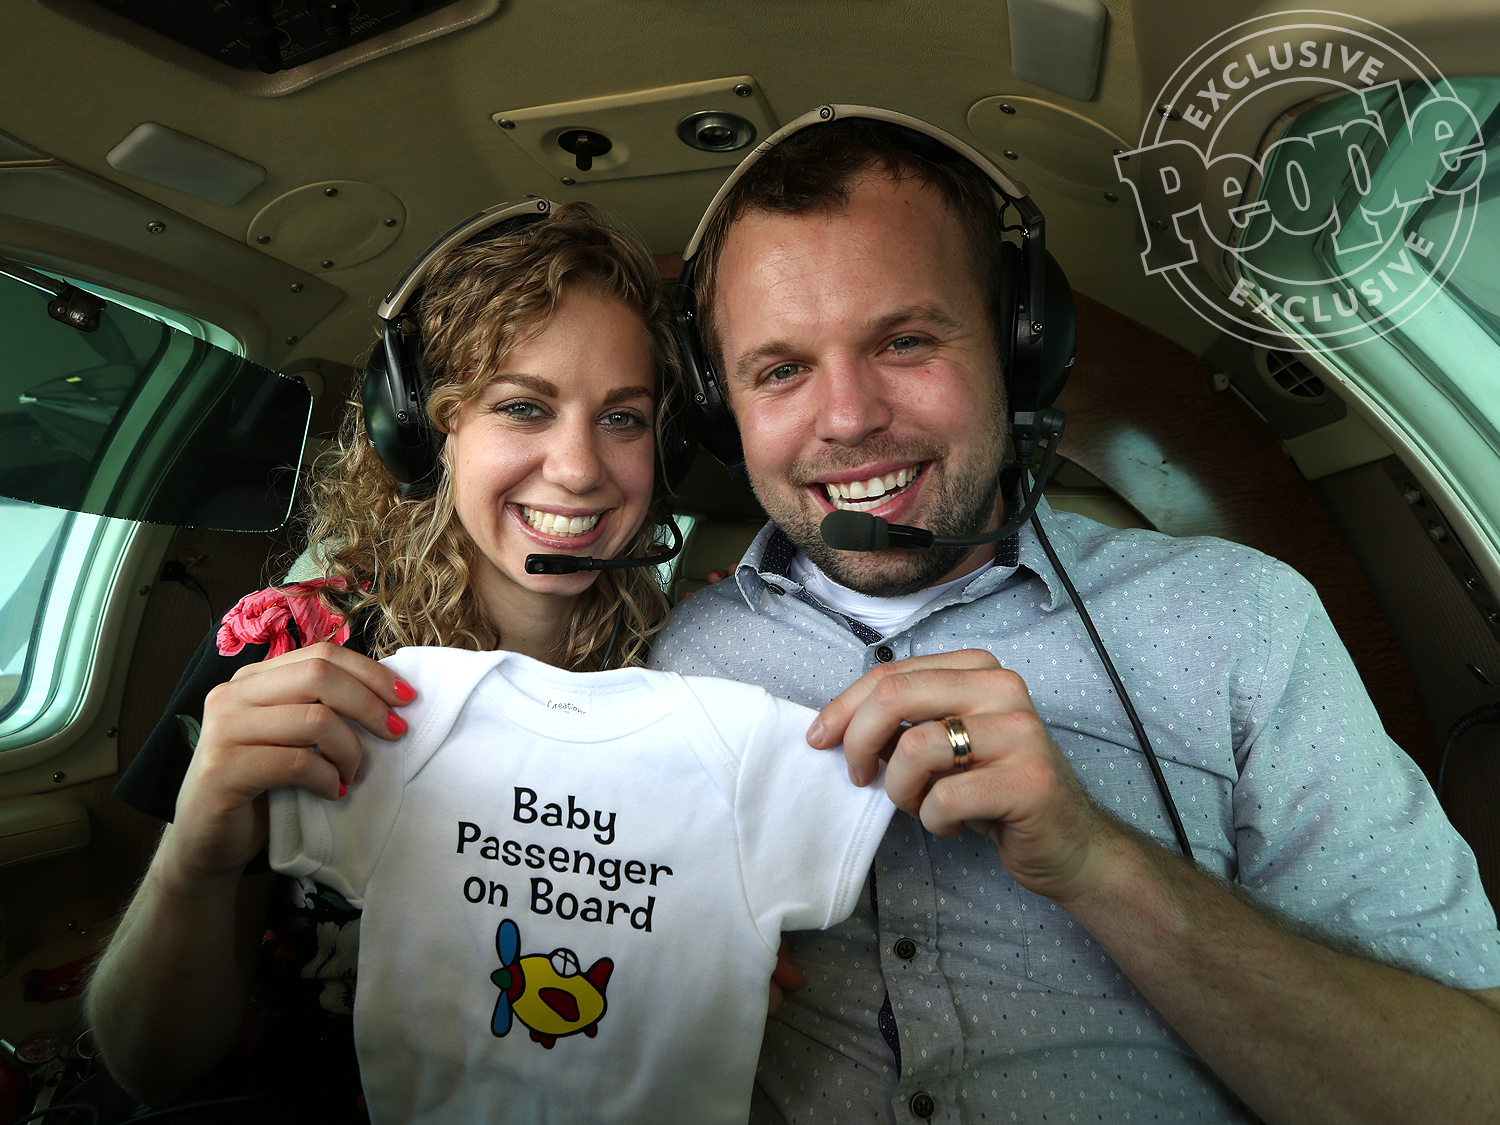 John Duggar and his wife Abby pregnancy announcement